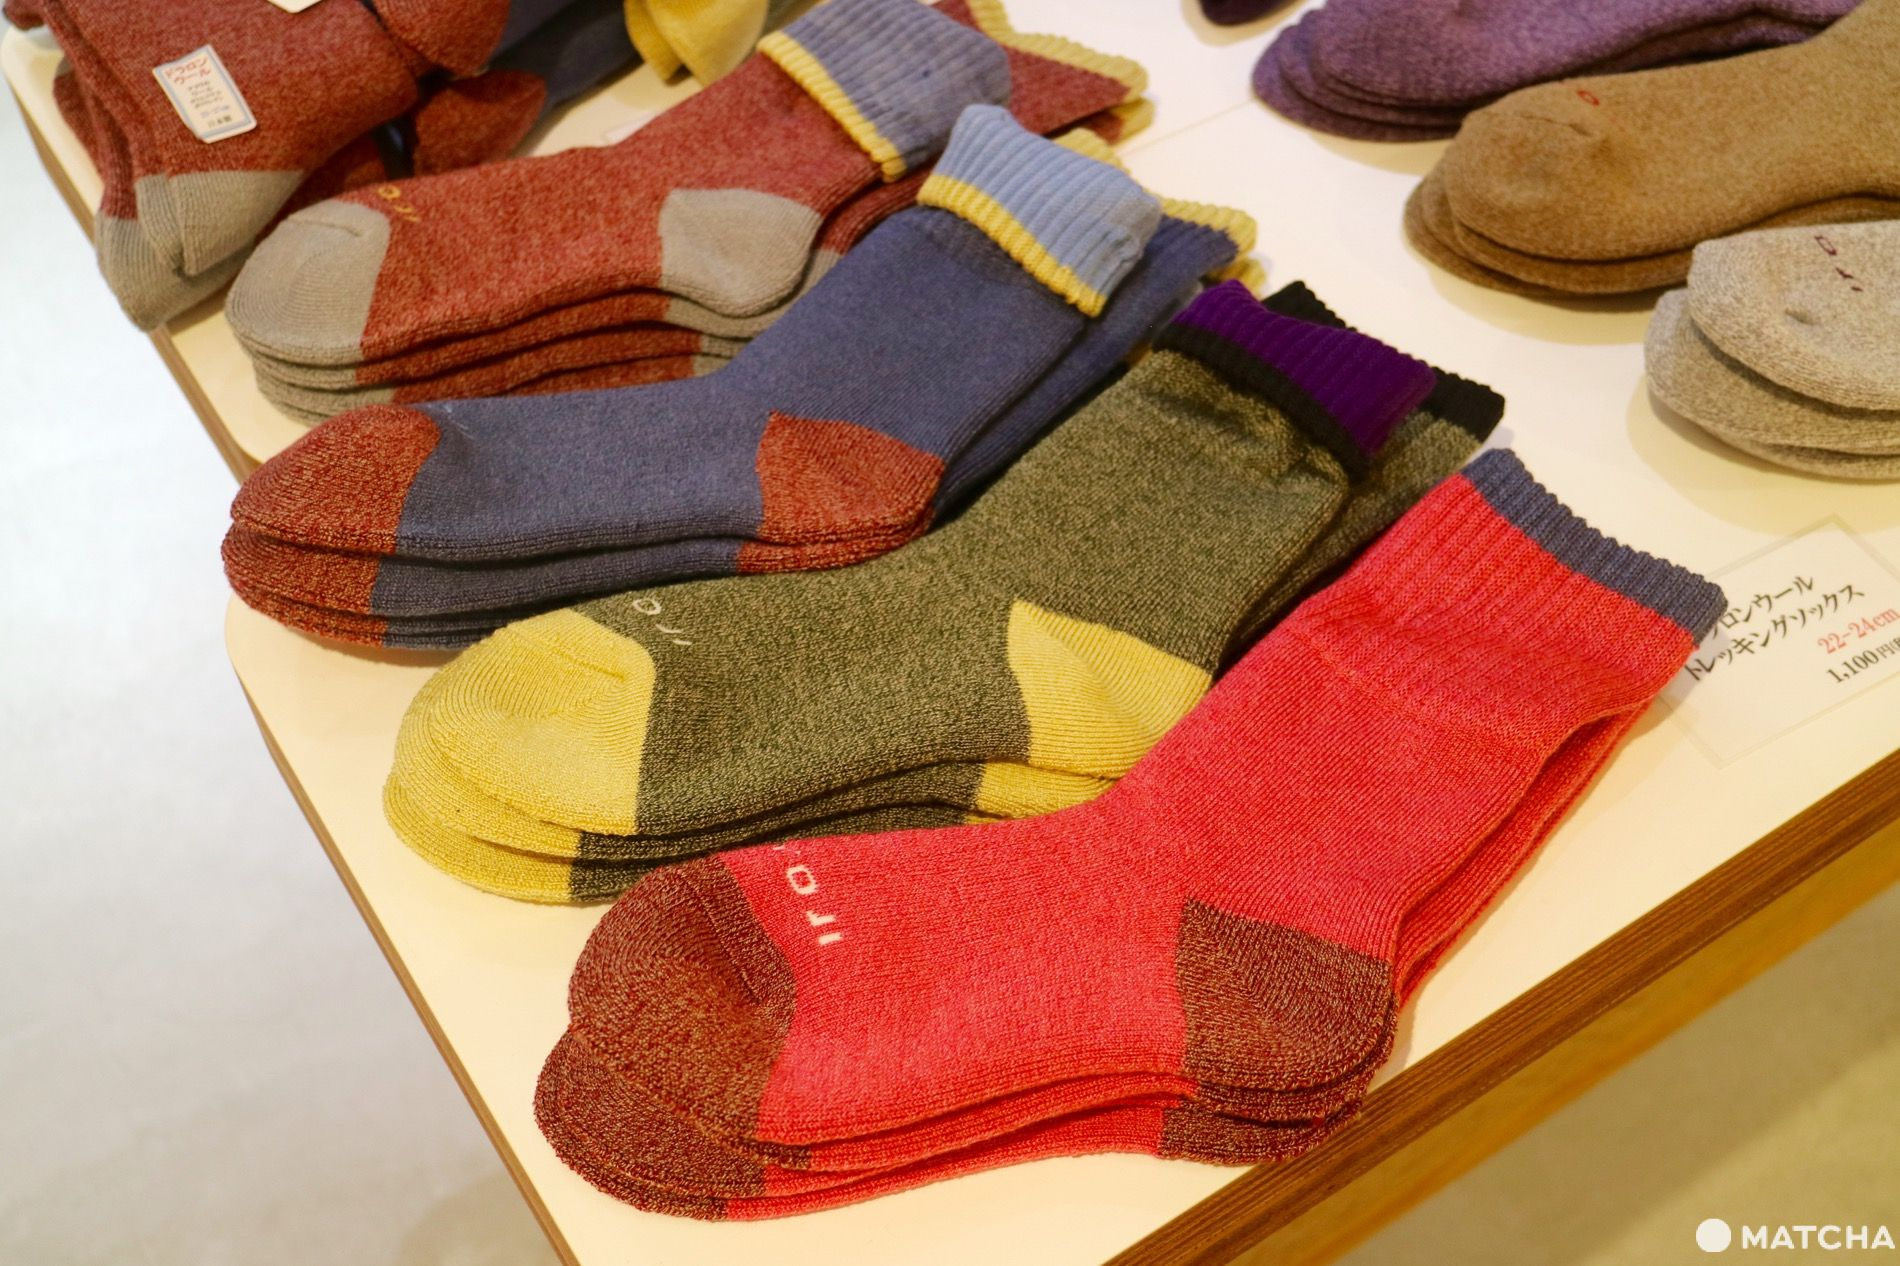 Wear it Once and Become a Life-Long User! Chiyoji Socks With Great Designs and Functionality